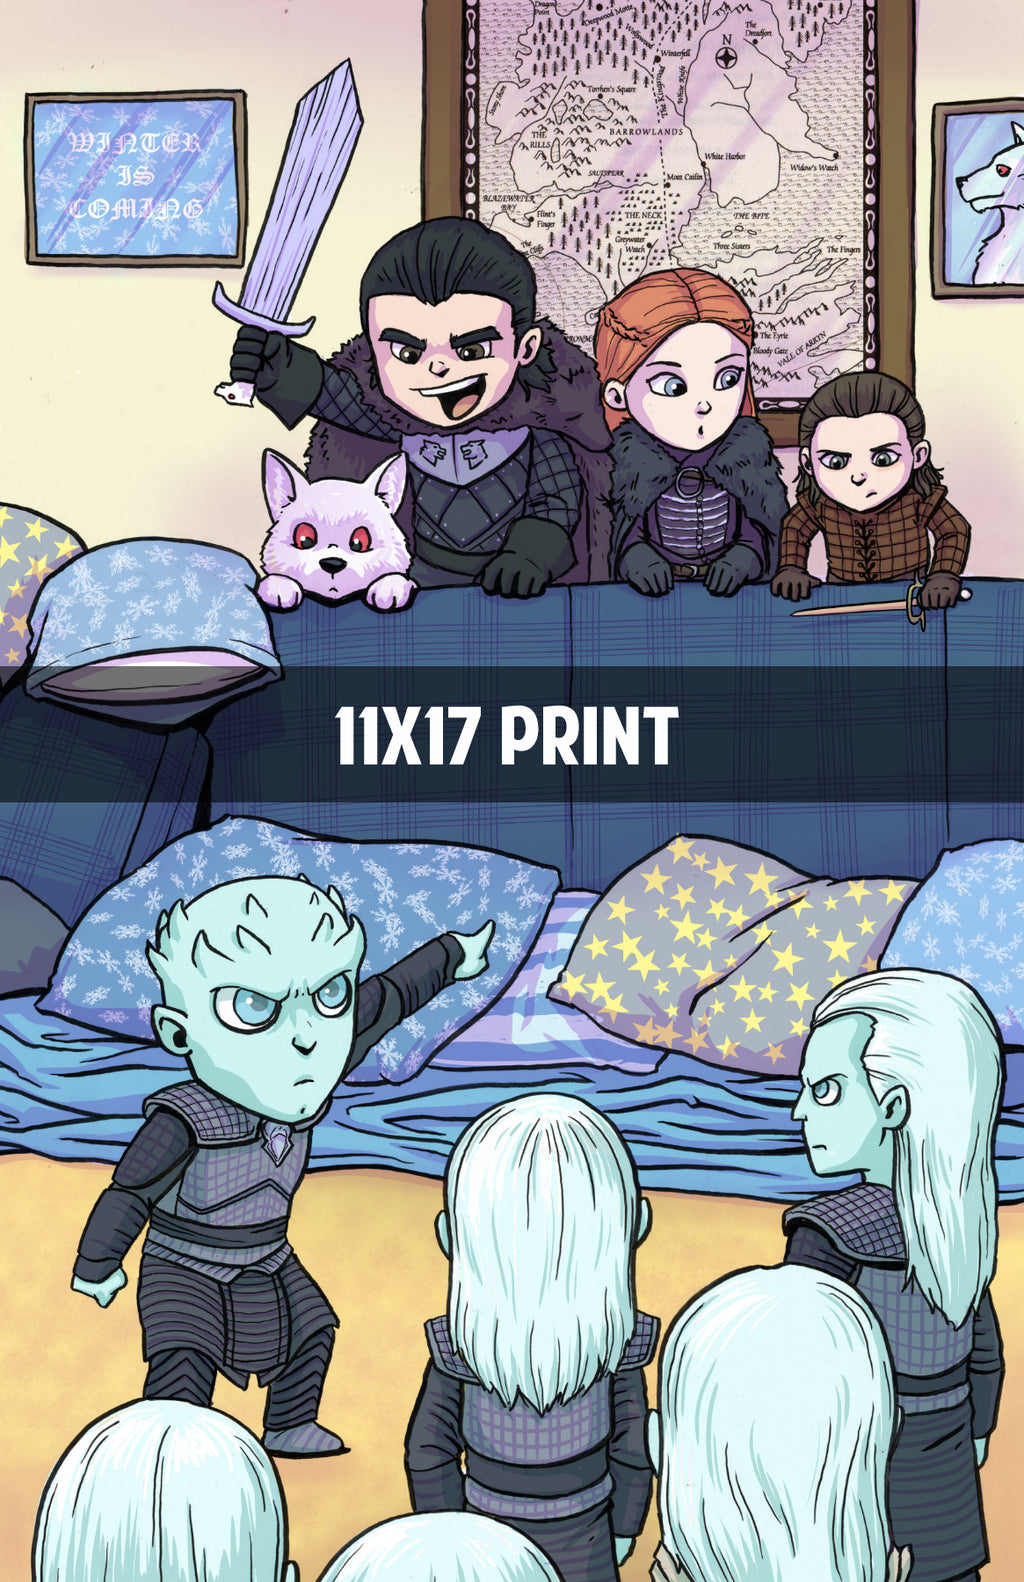 Game of Thrones - The Wall - 11x17 Print